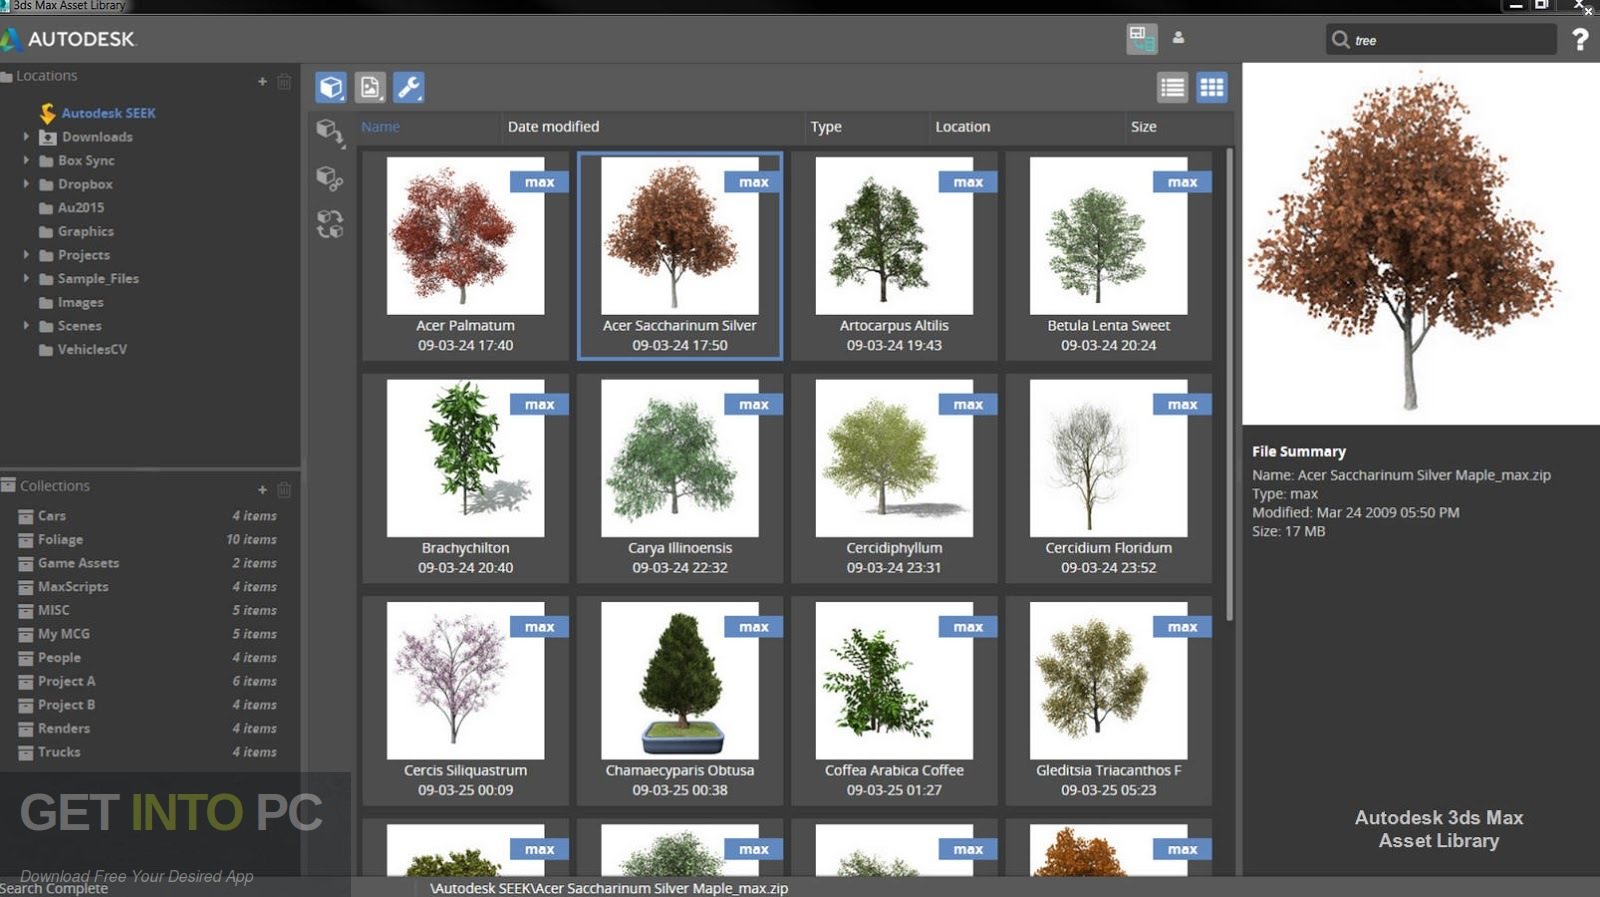 Autodesk 3ds Max 2009 Plugins Collections Offline Installer Download-GetintoPC.com